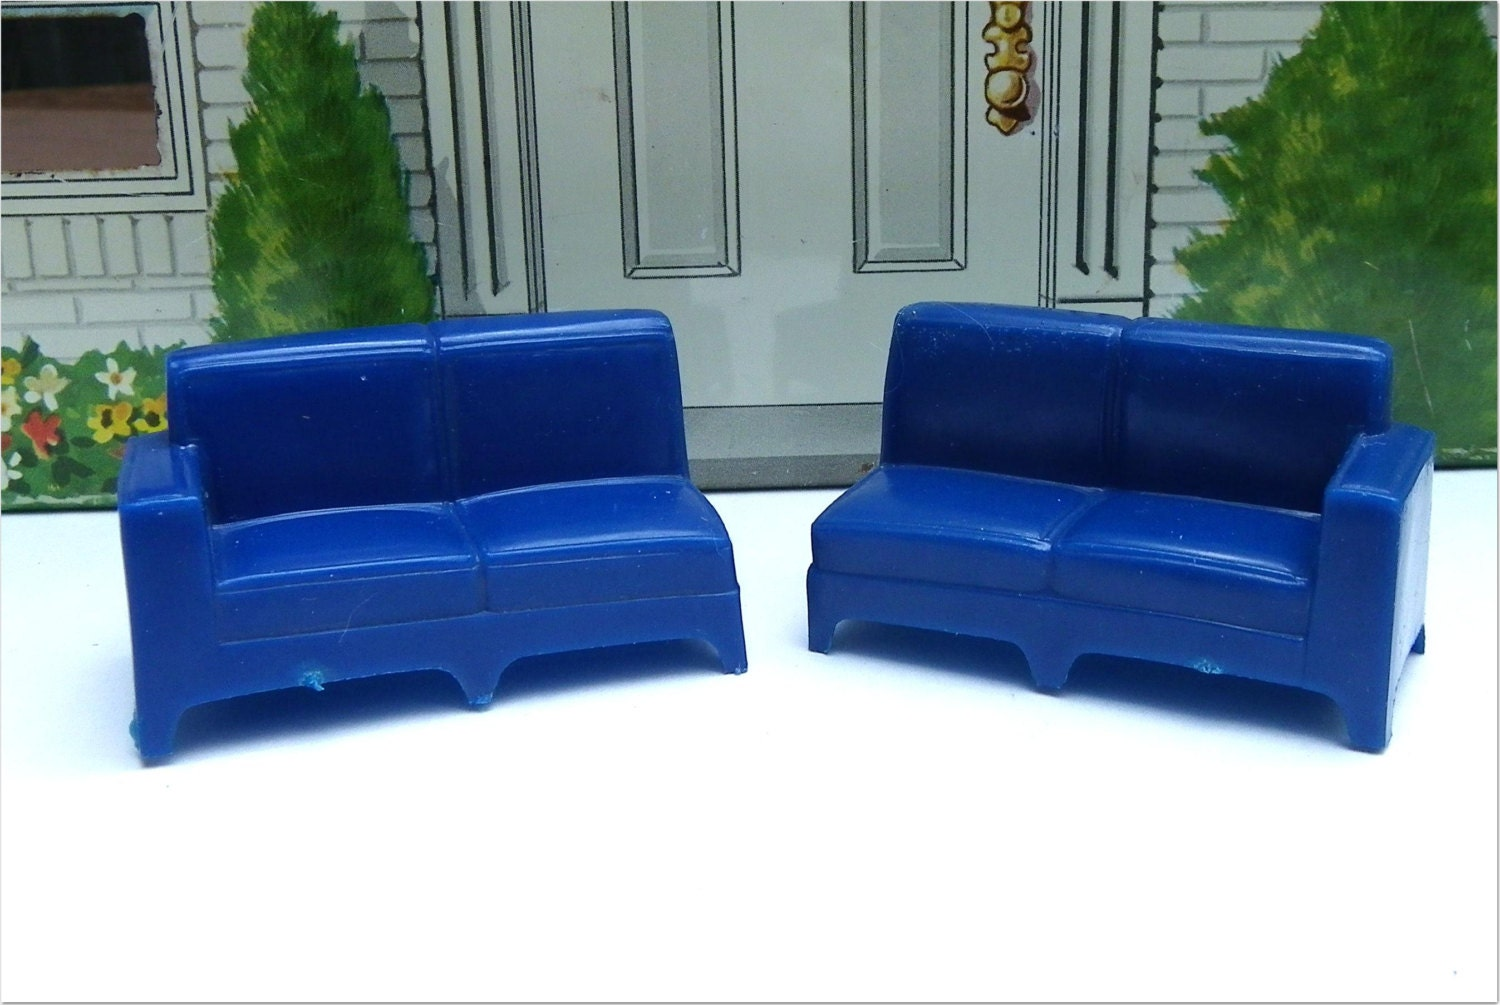 marx rancher sofa alternative harder to by madhatterminiatures. Black Bedroom Furniture Sets. Home Design Ideas